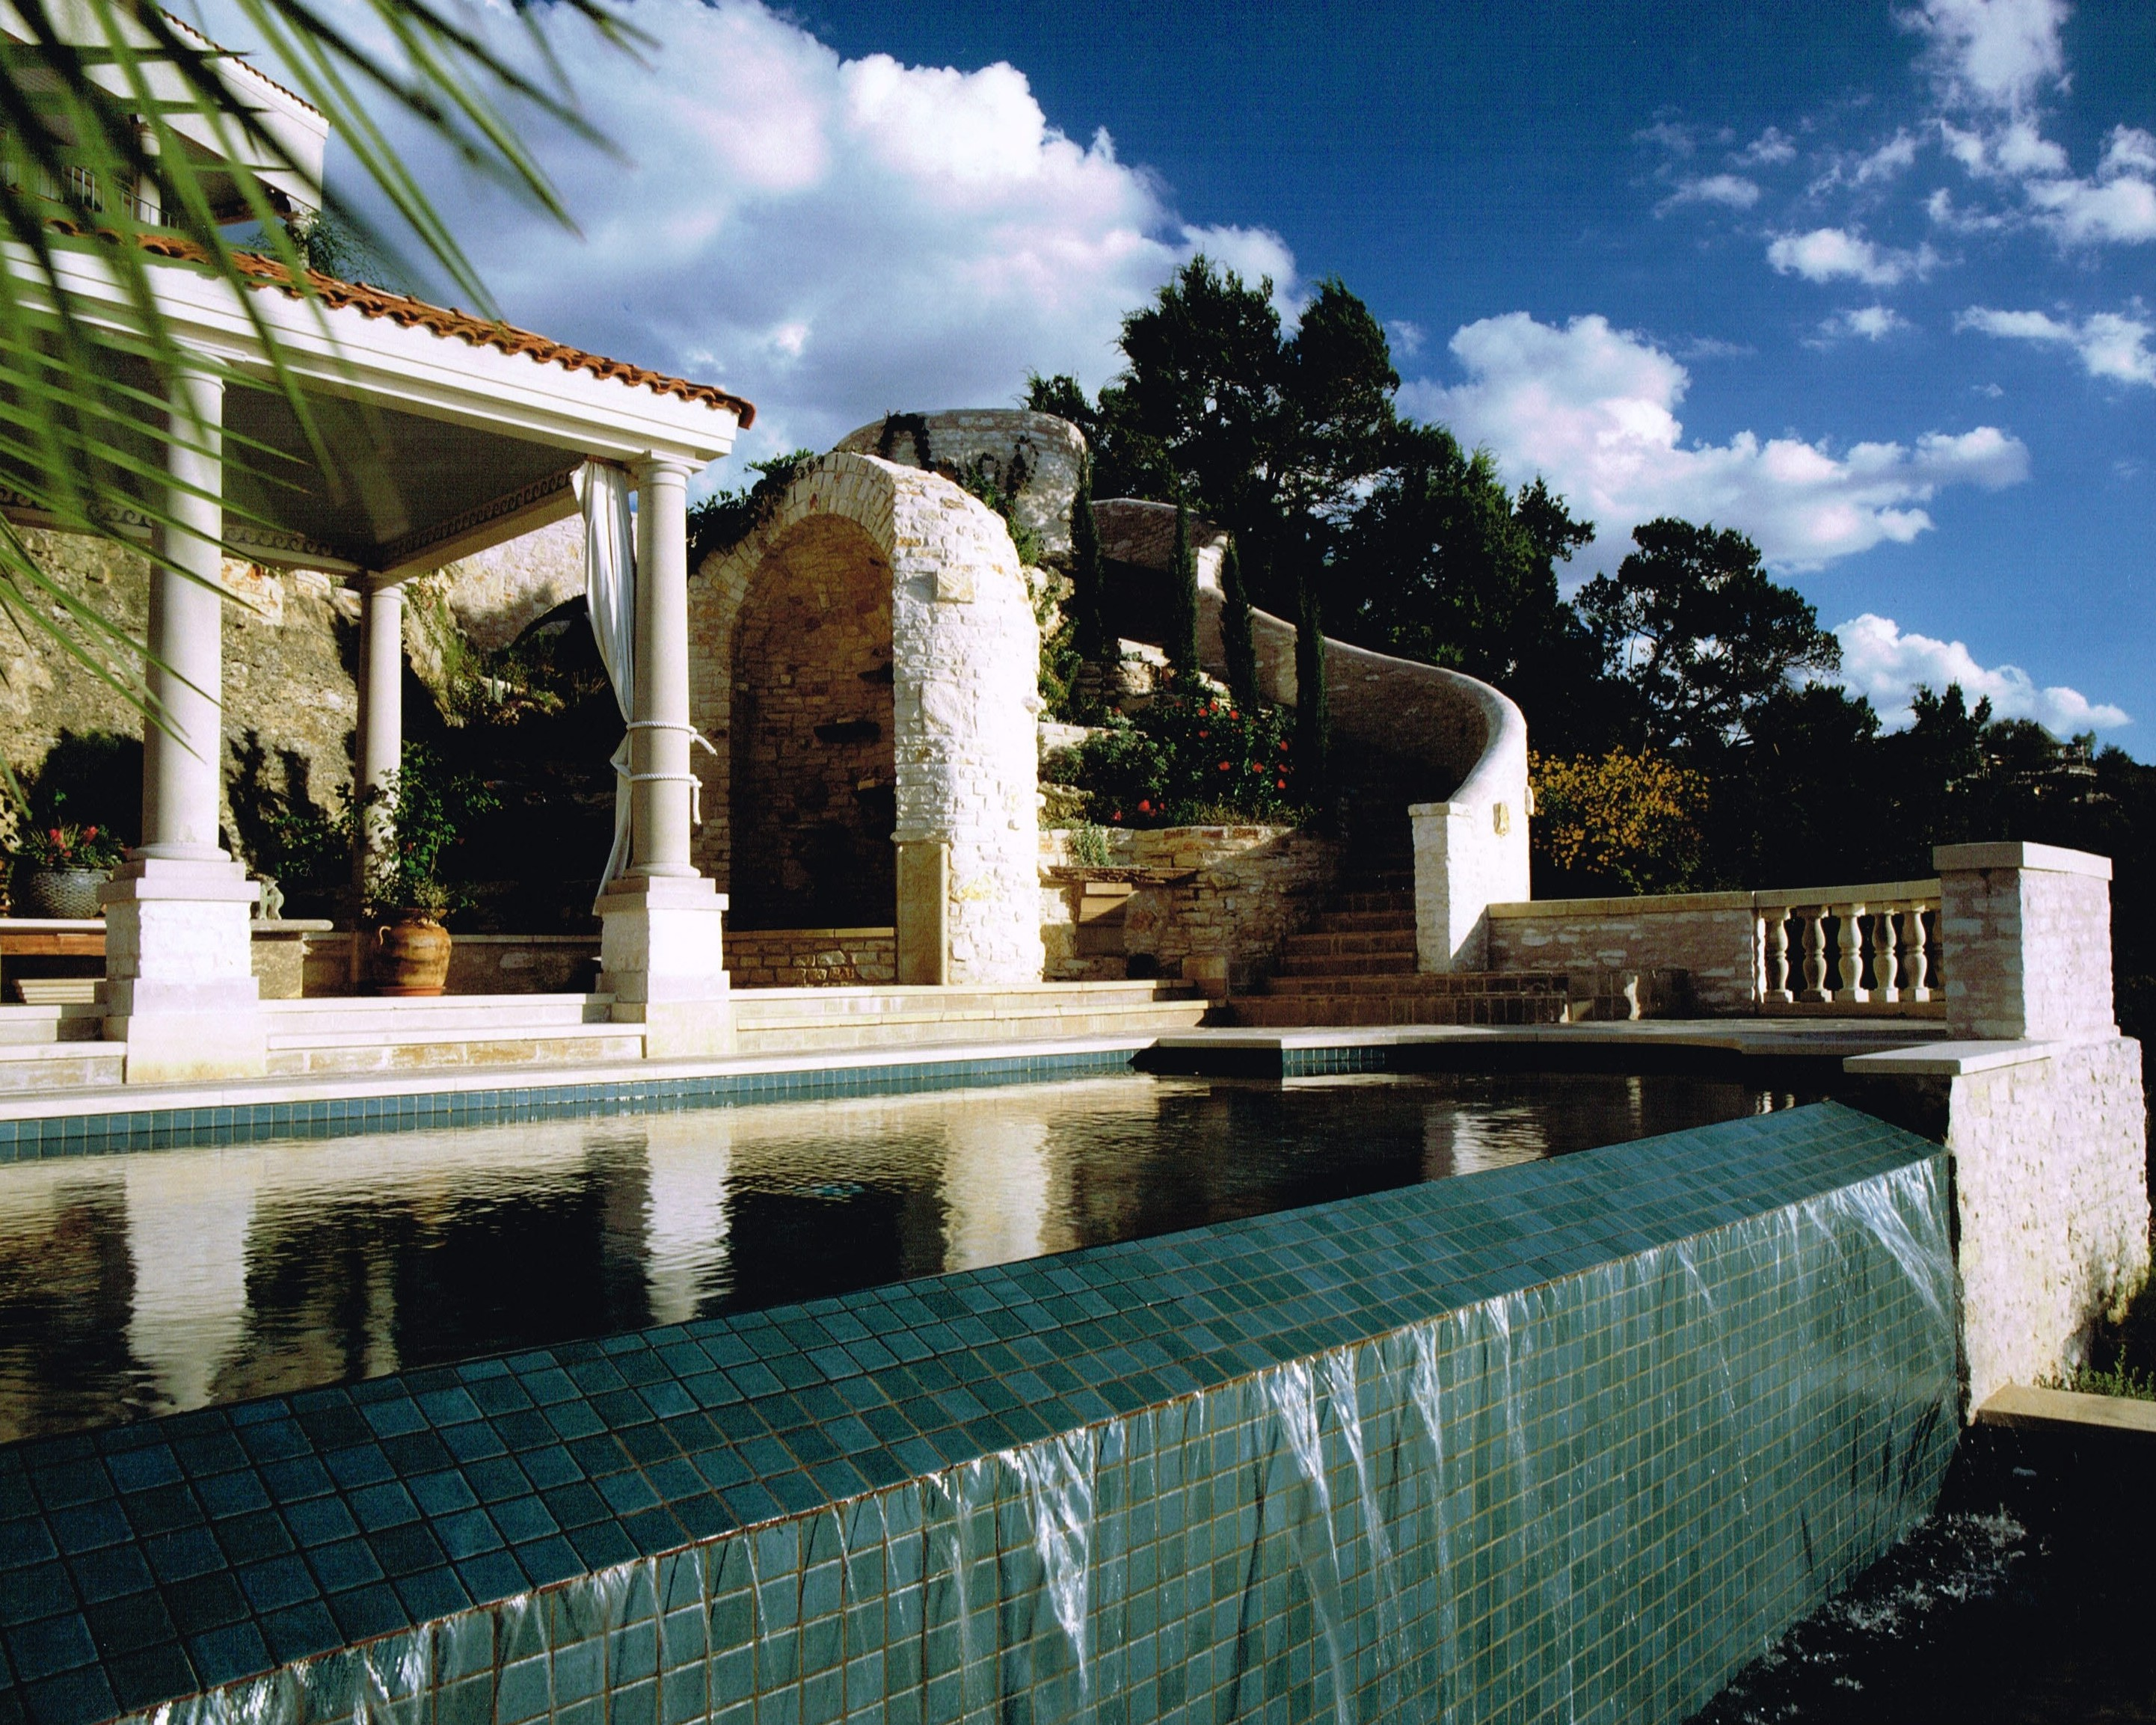 Gallery reliant pools pool builder austin tx for Pool design austin